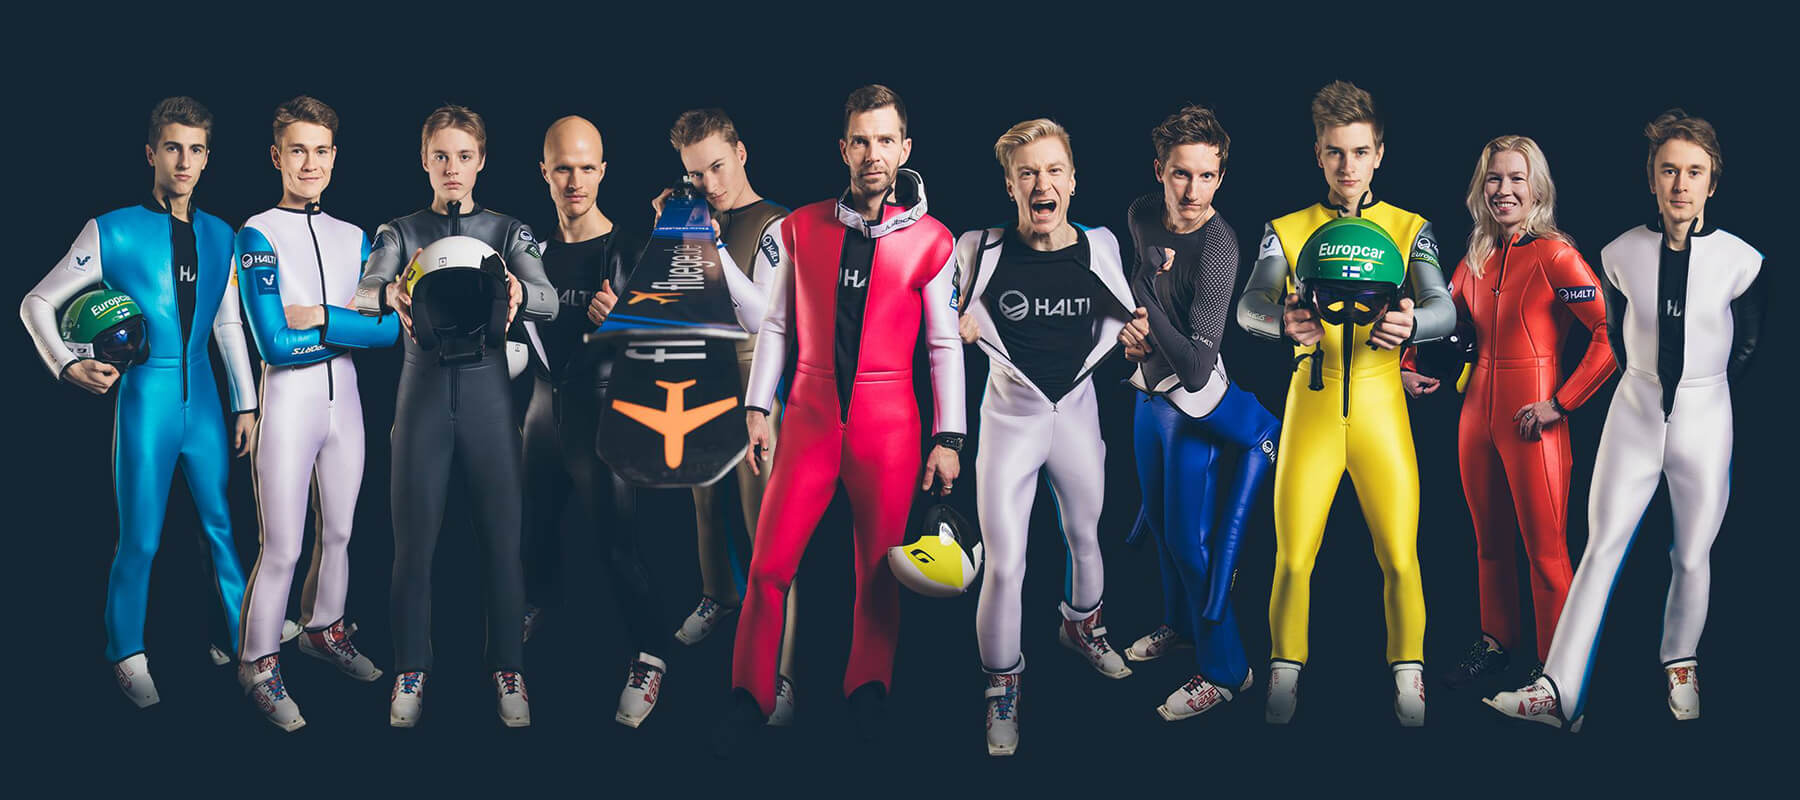 The official partner for the Ski Jumping Team Finland